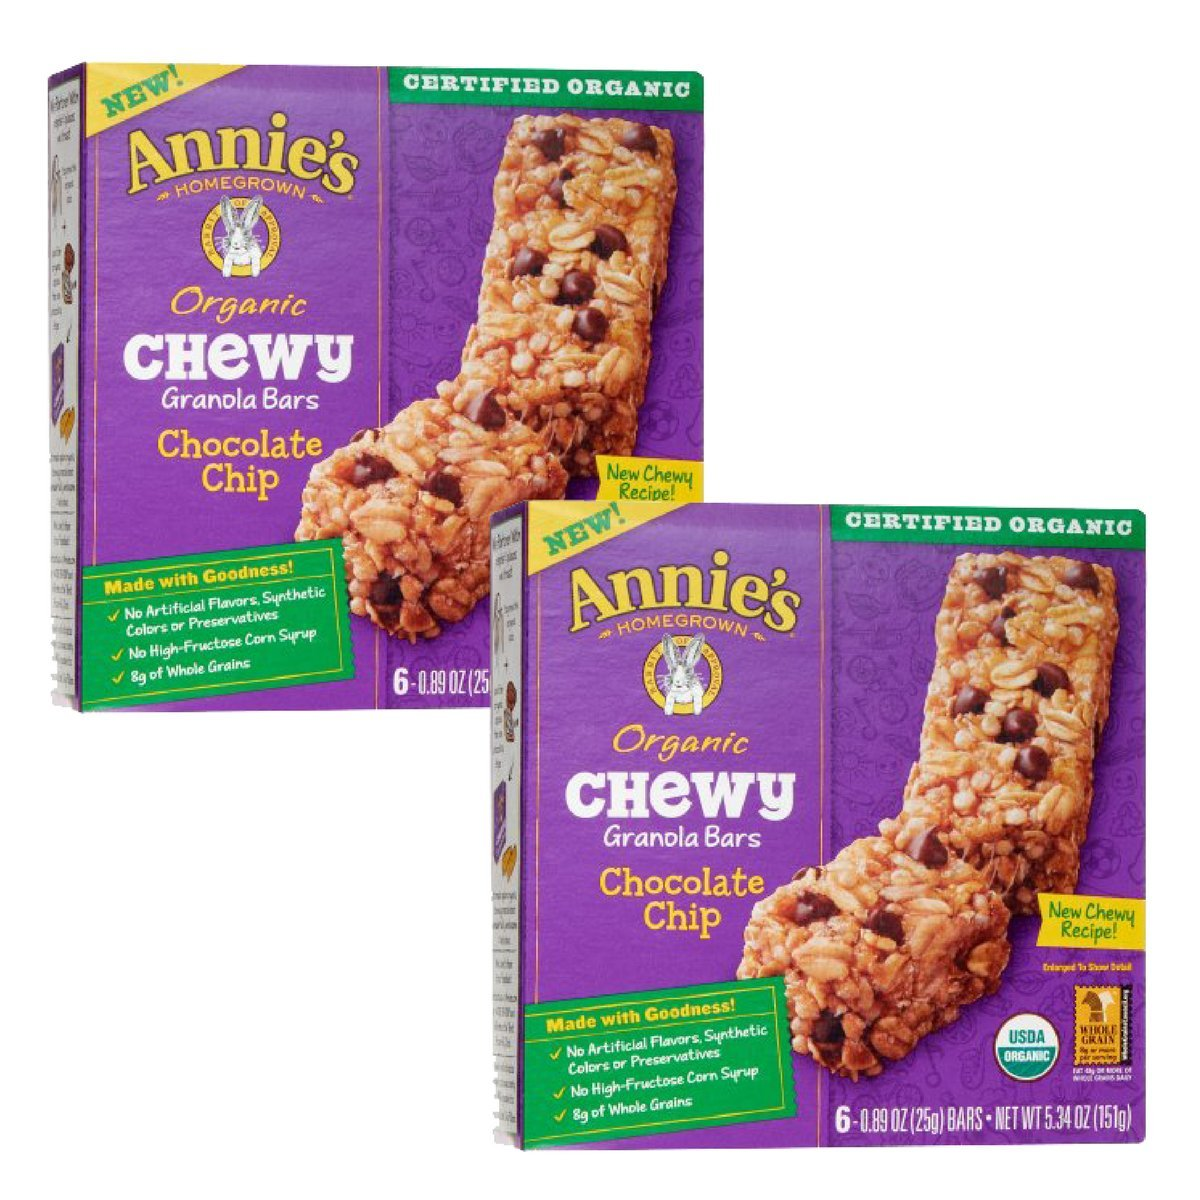 Annie's Organic Chewy Chocolate Chip Granola Bars 6 ct (Pack of 2) by Annie's Homegrown (Image #1)